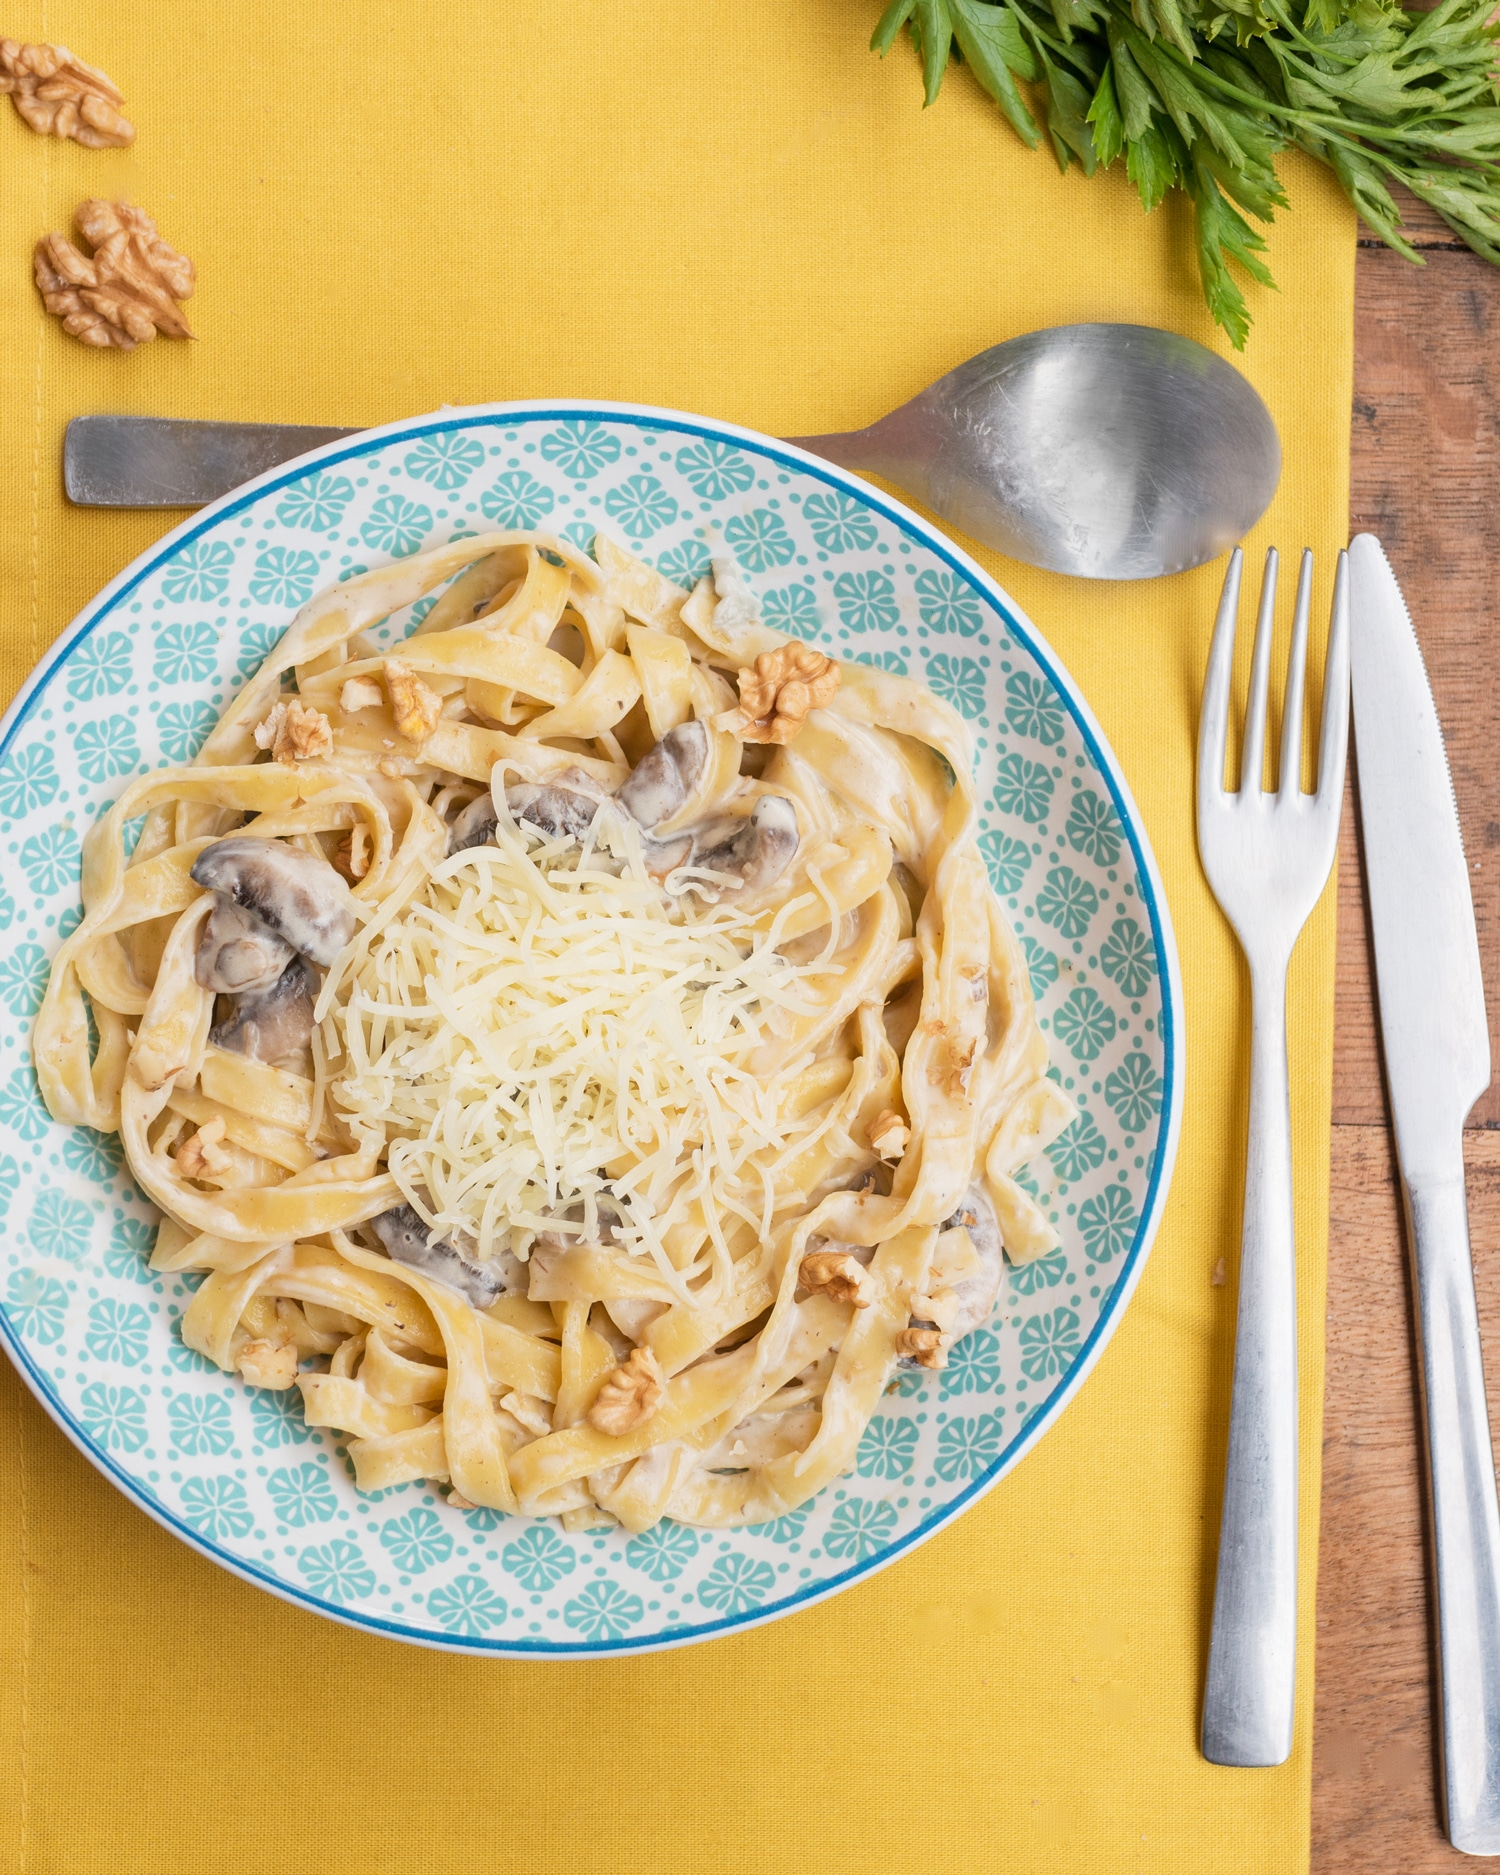 Tagliatelle with a cheese and mushroom sauce